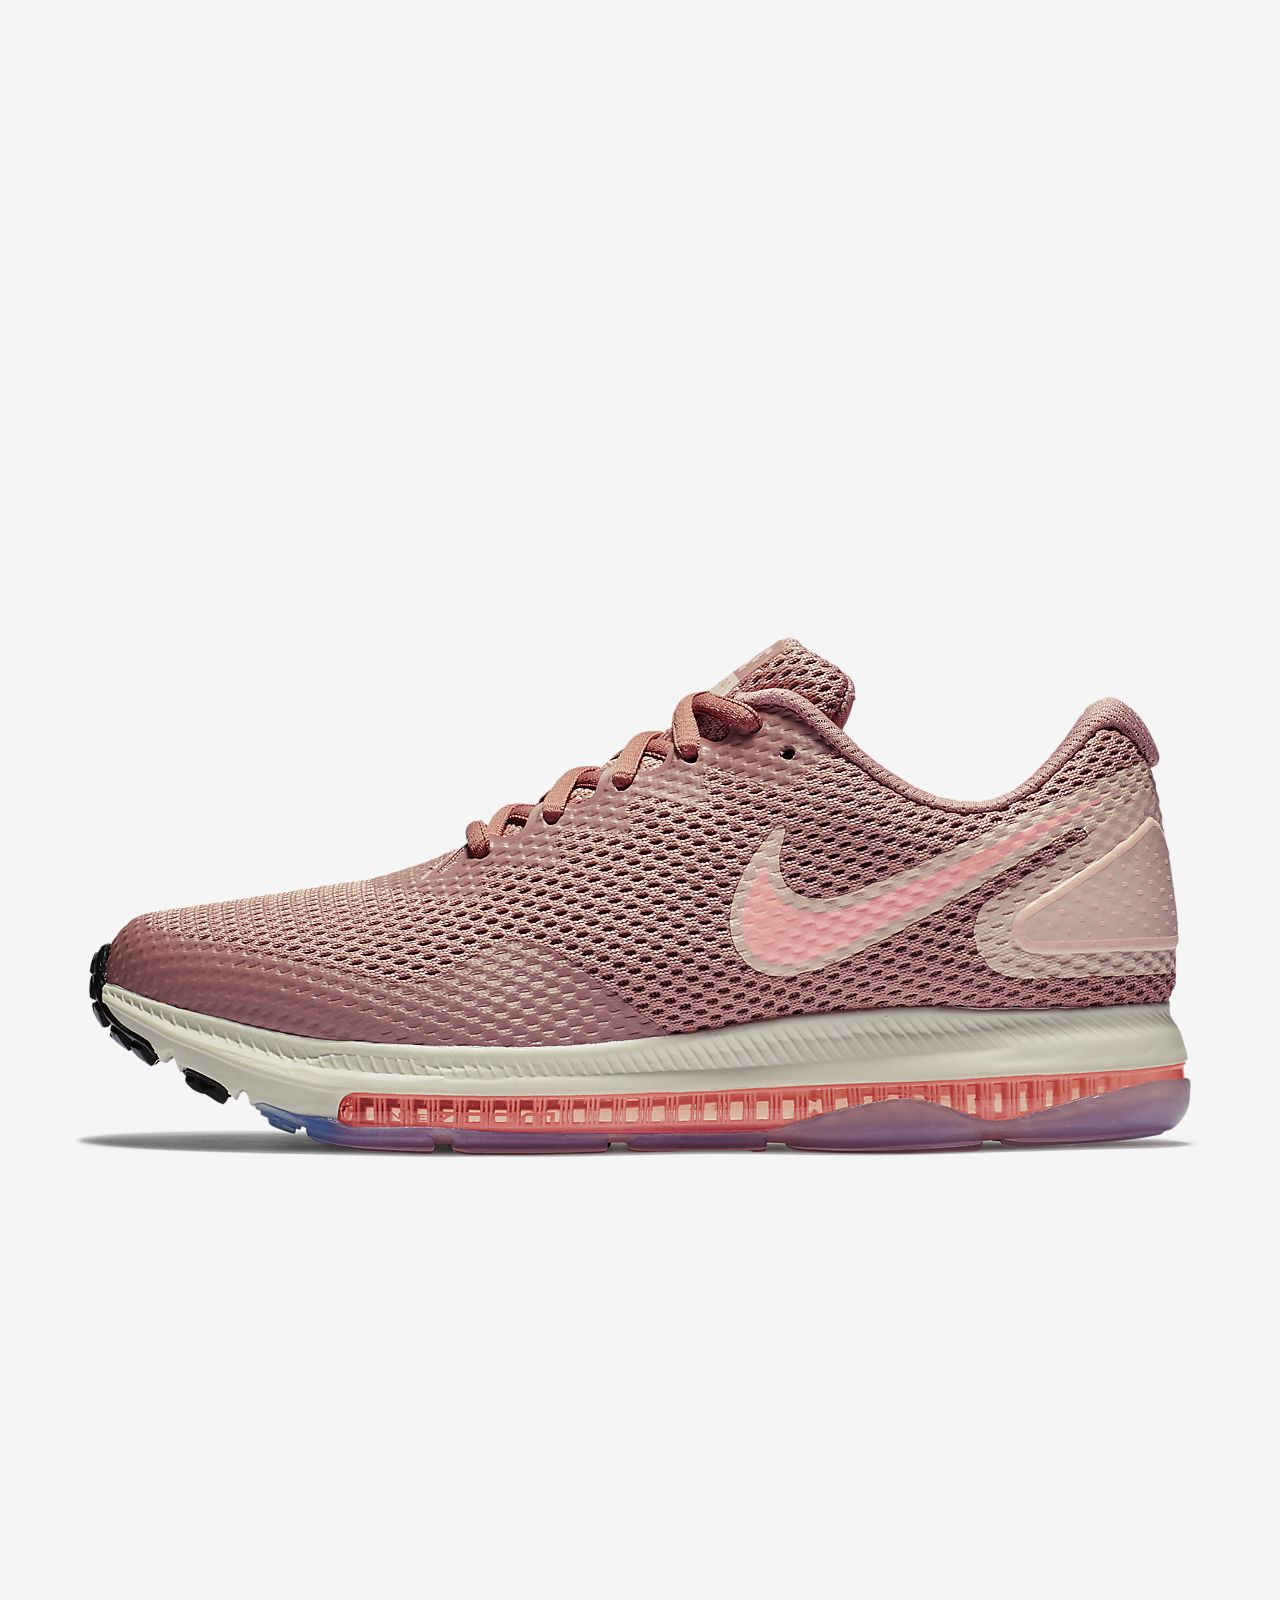 new concept 56d4b 17633 Nike Zoom All Out Low 2 Women's Running Shoe